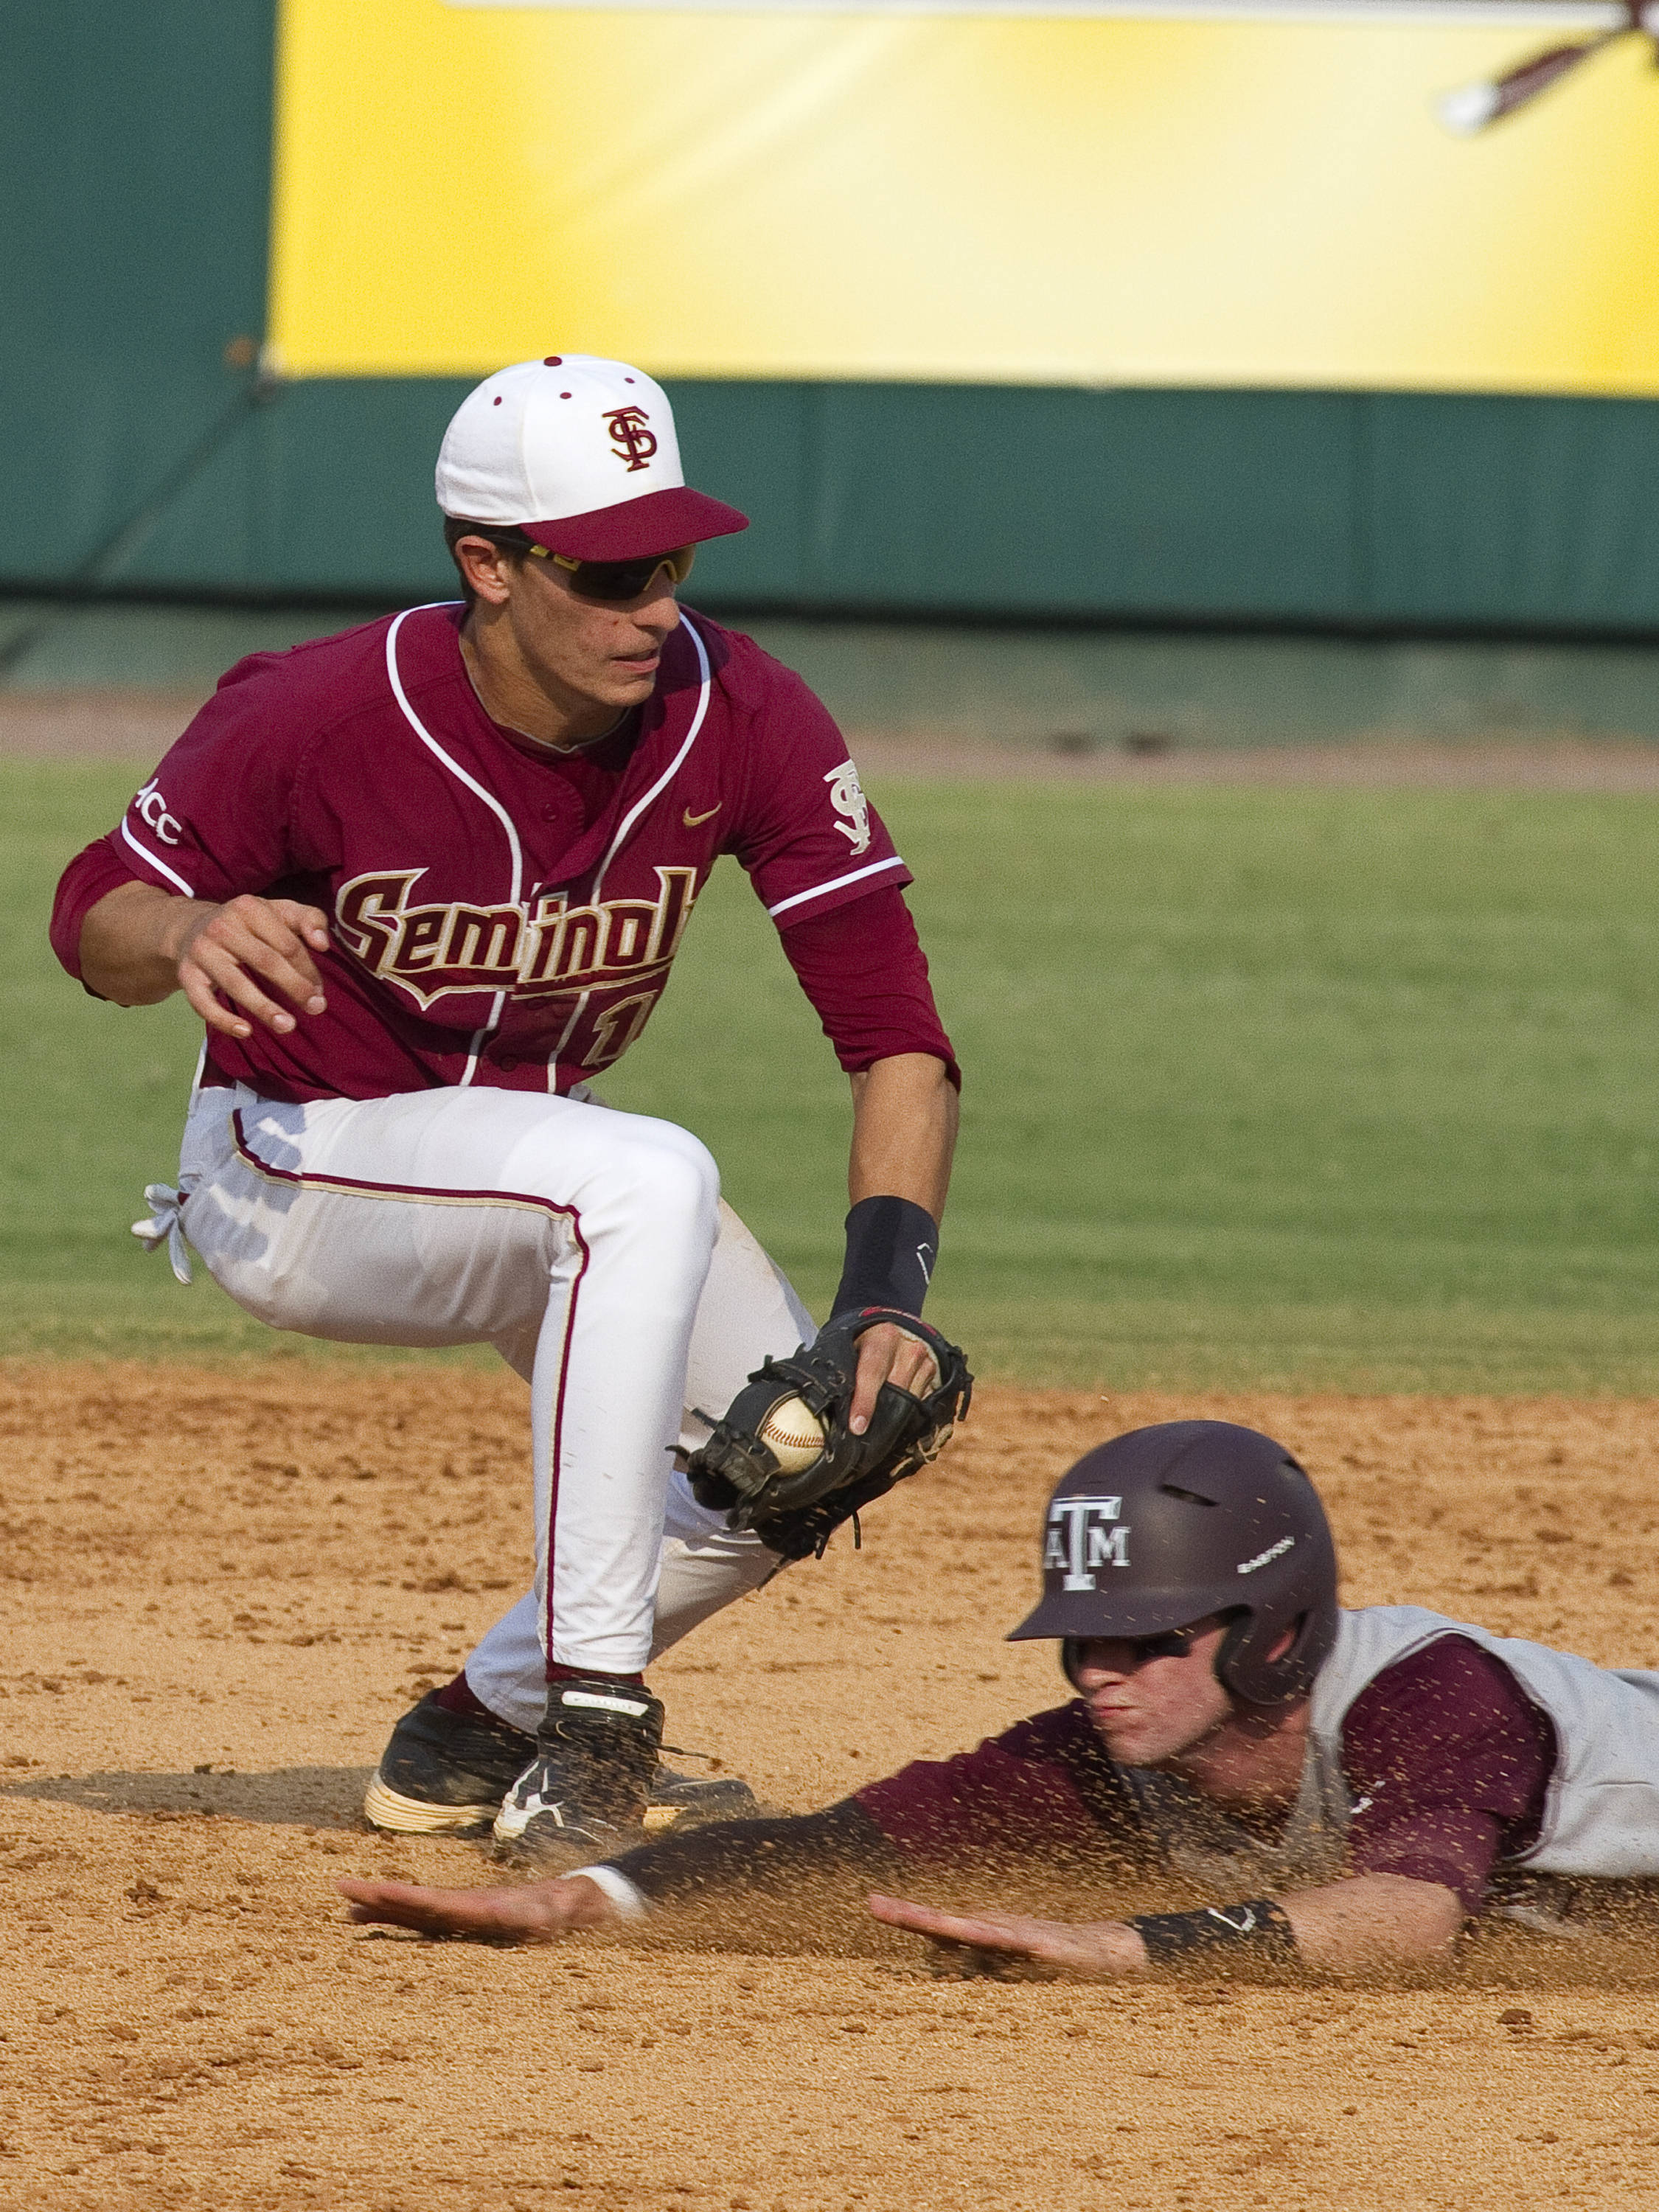 Shortstop Justin Gonzalez (10) tagging out a Texas A&M runner on an attempted steal